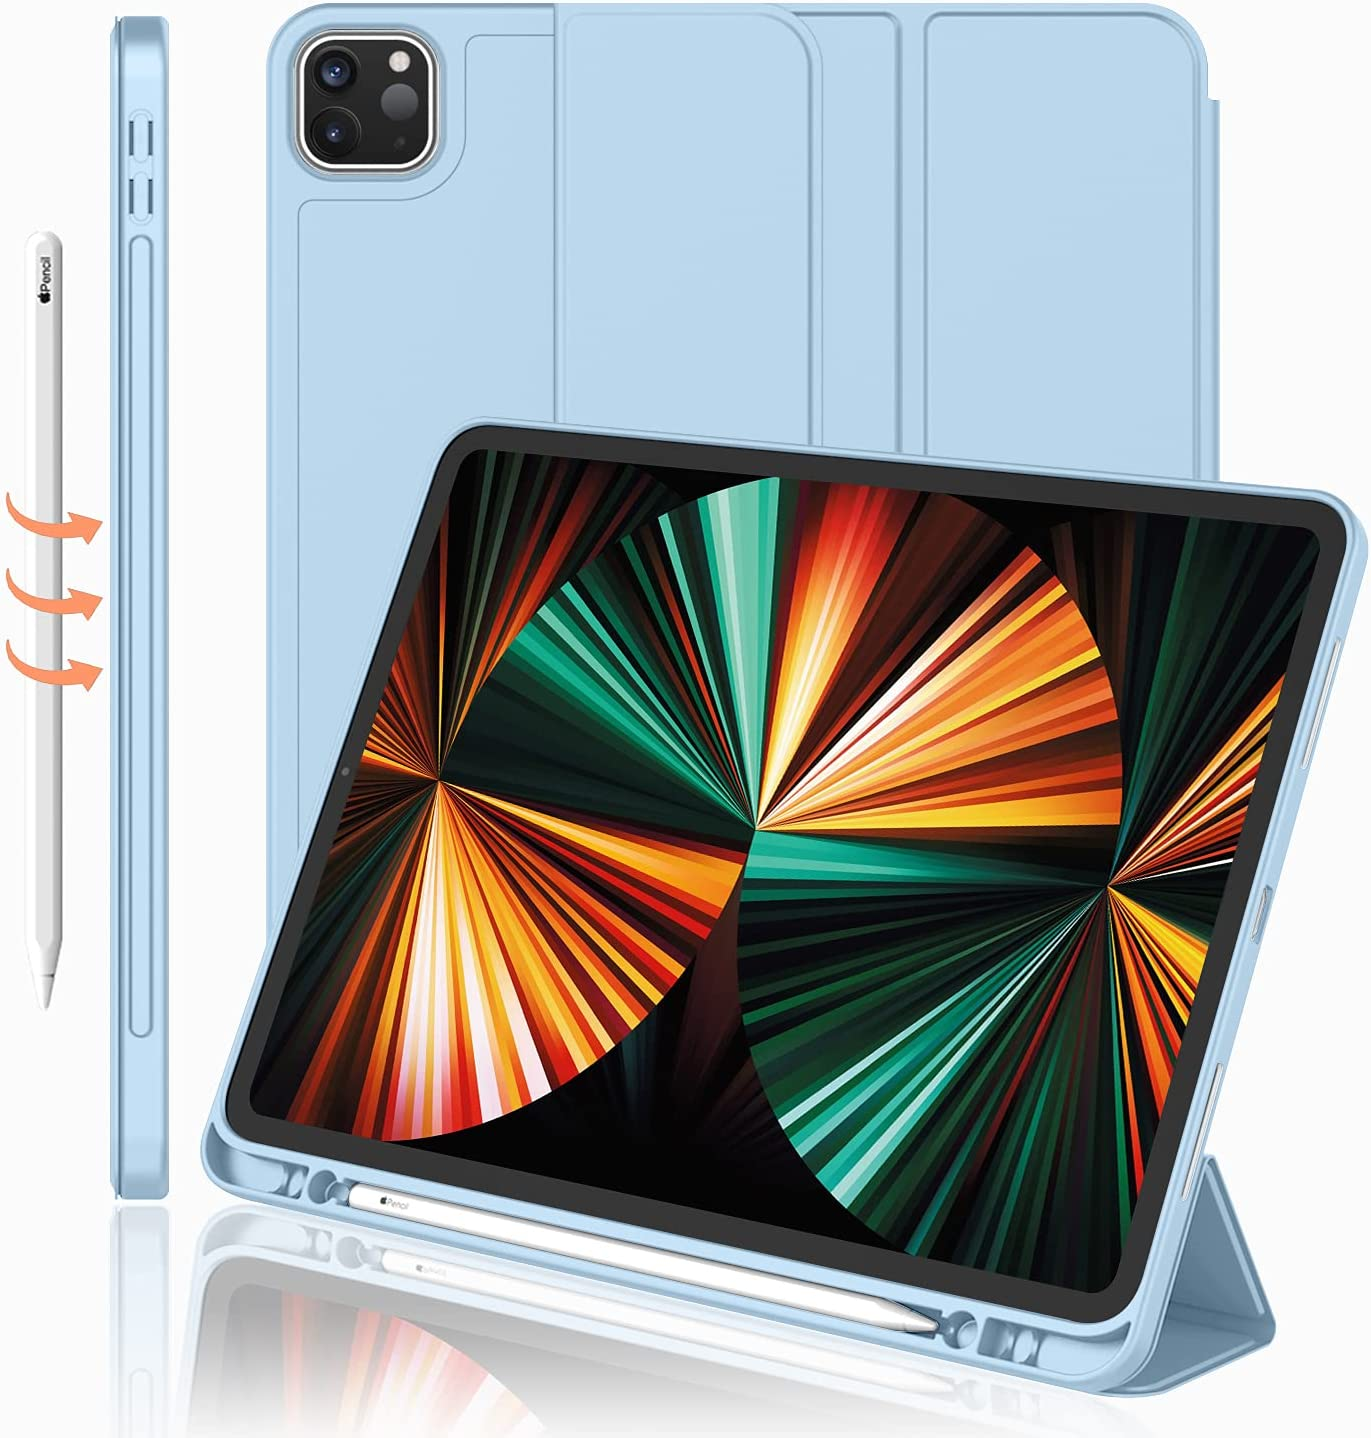 iMieet New iPad Pro 12.9 Case 2021(5th Gen) with Pencil Holder [Support iPad 2nd Pencil Charging/Pair],Trifold Stand Smart Case with Soft TPU Back,Auto Wake/Sleep(Sky Blue)